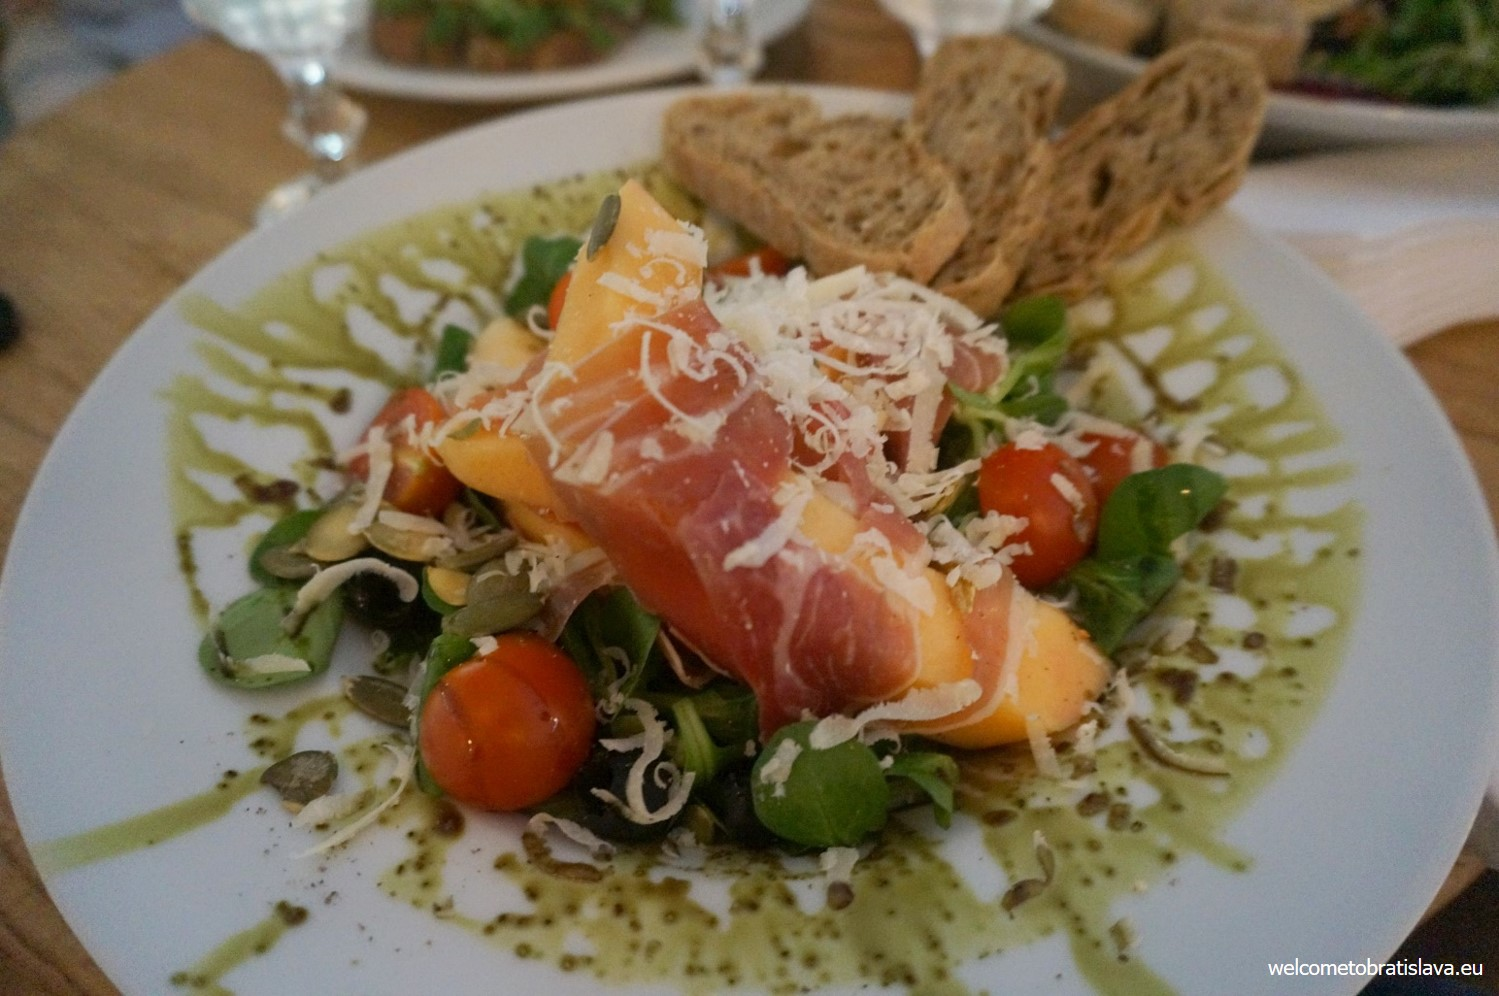 Salad with prosciutto and melon